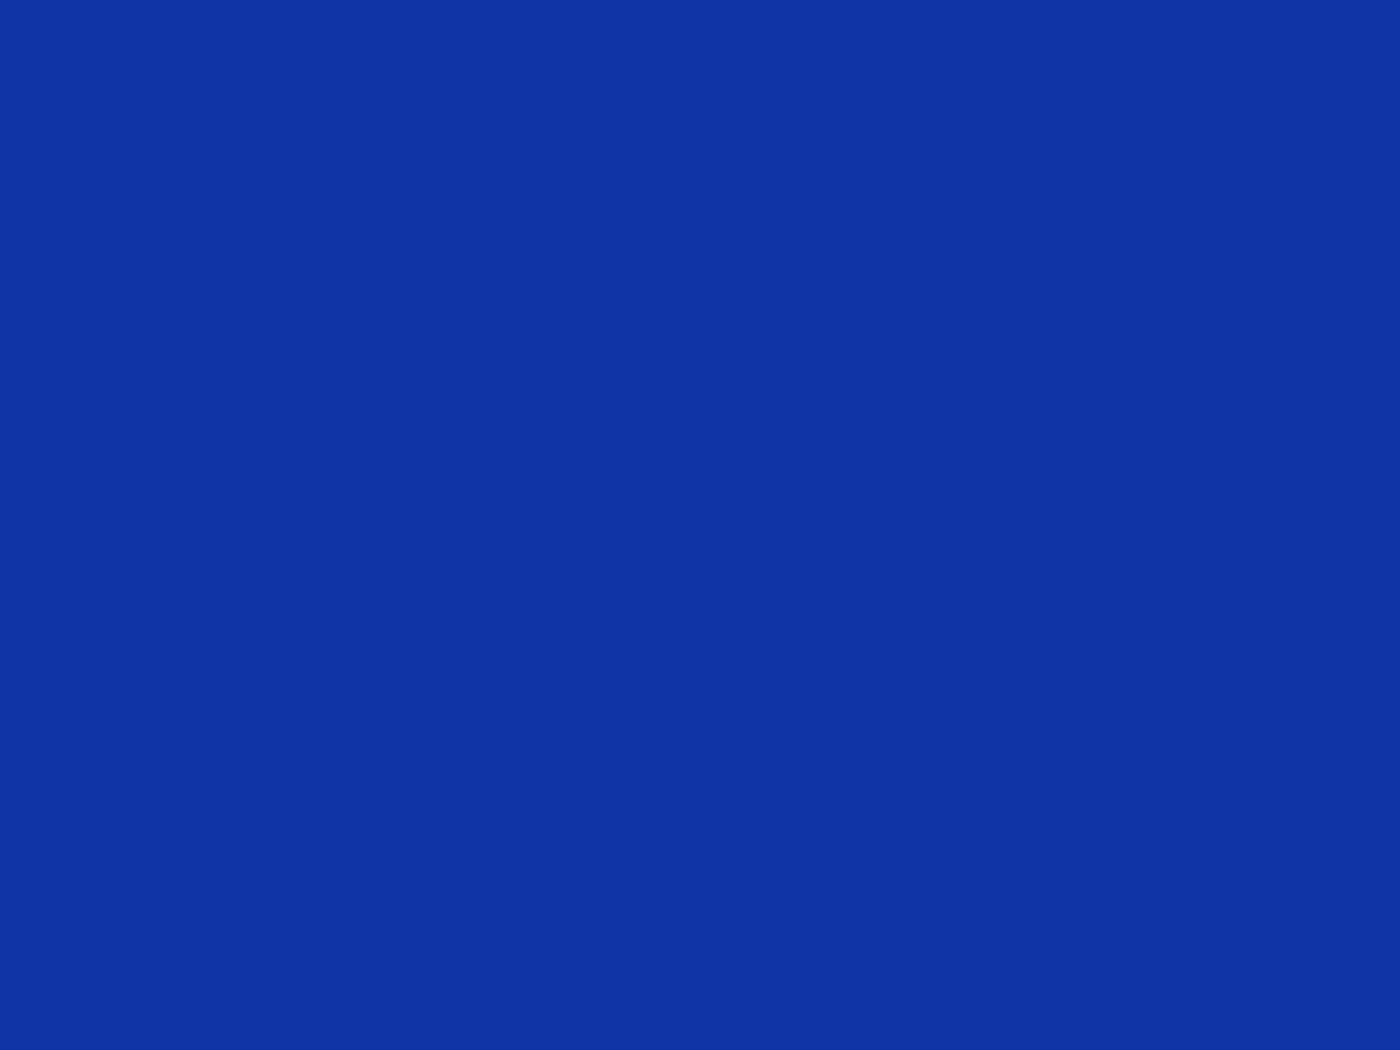 1400x1050 Egyptian Blue Solid Color Background